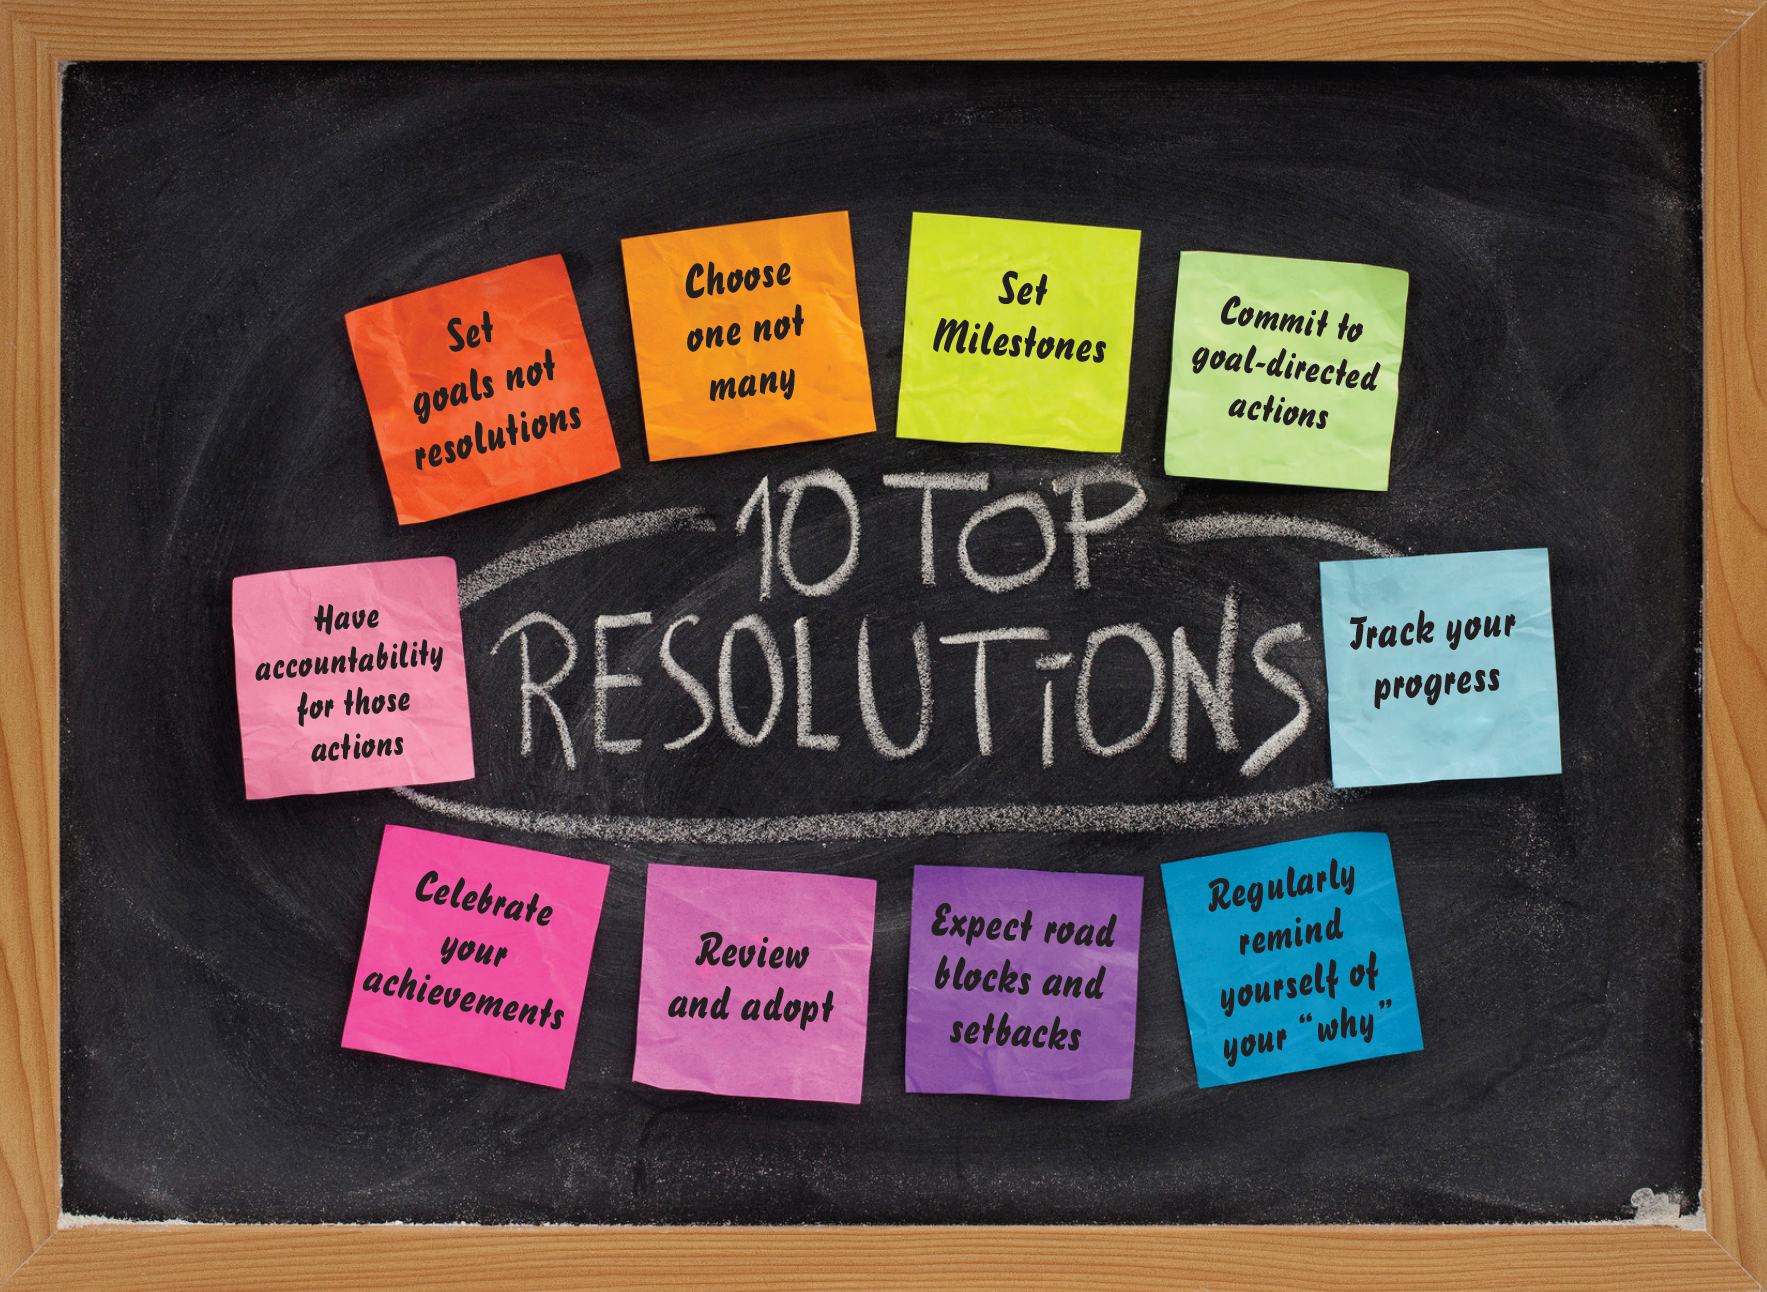 10 tips to make your New Year's Resolution a success ...